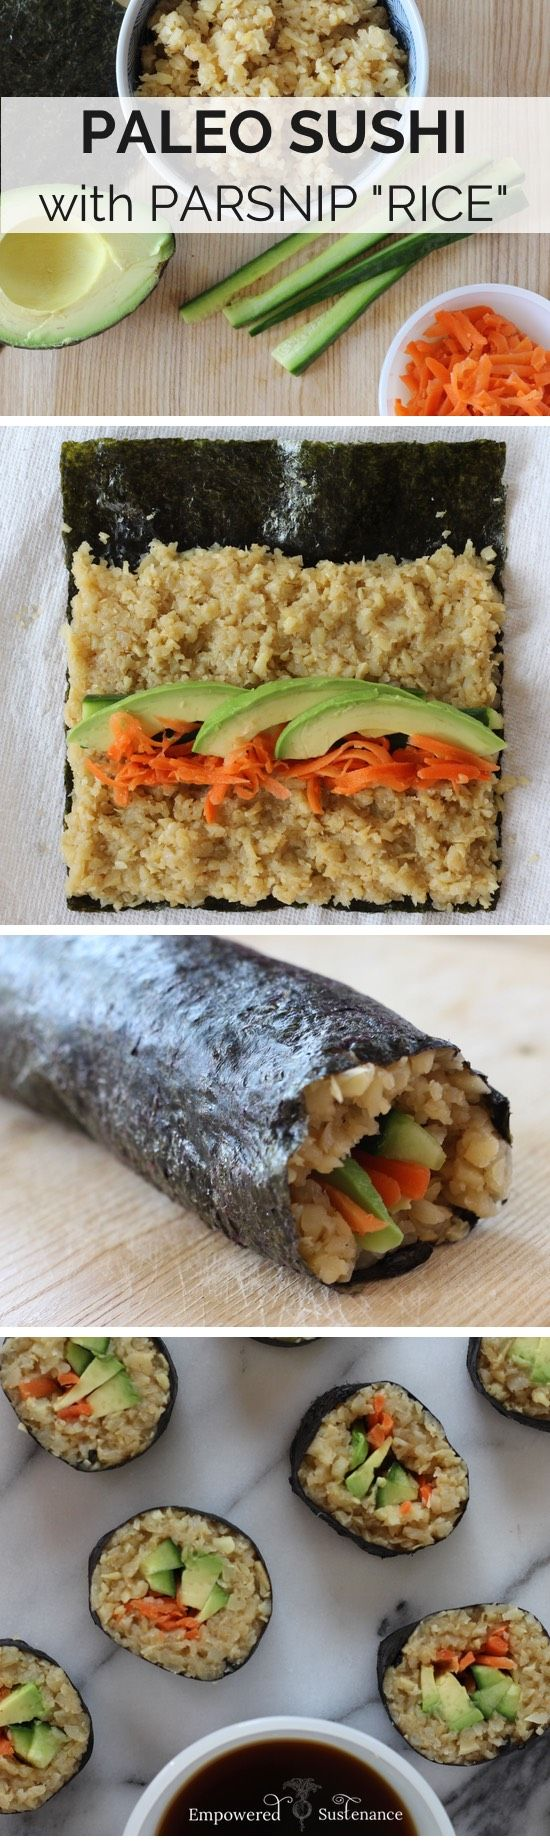 "Easy, veggie-packed Paleo Sushi featuring parsnip ""rice"""